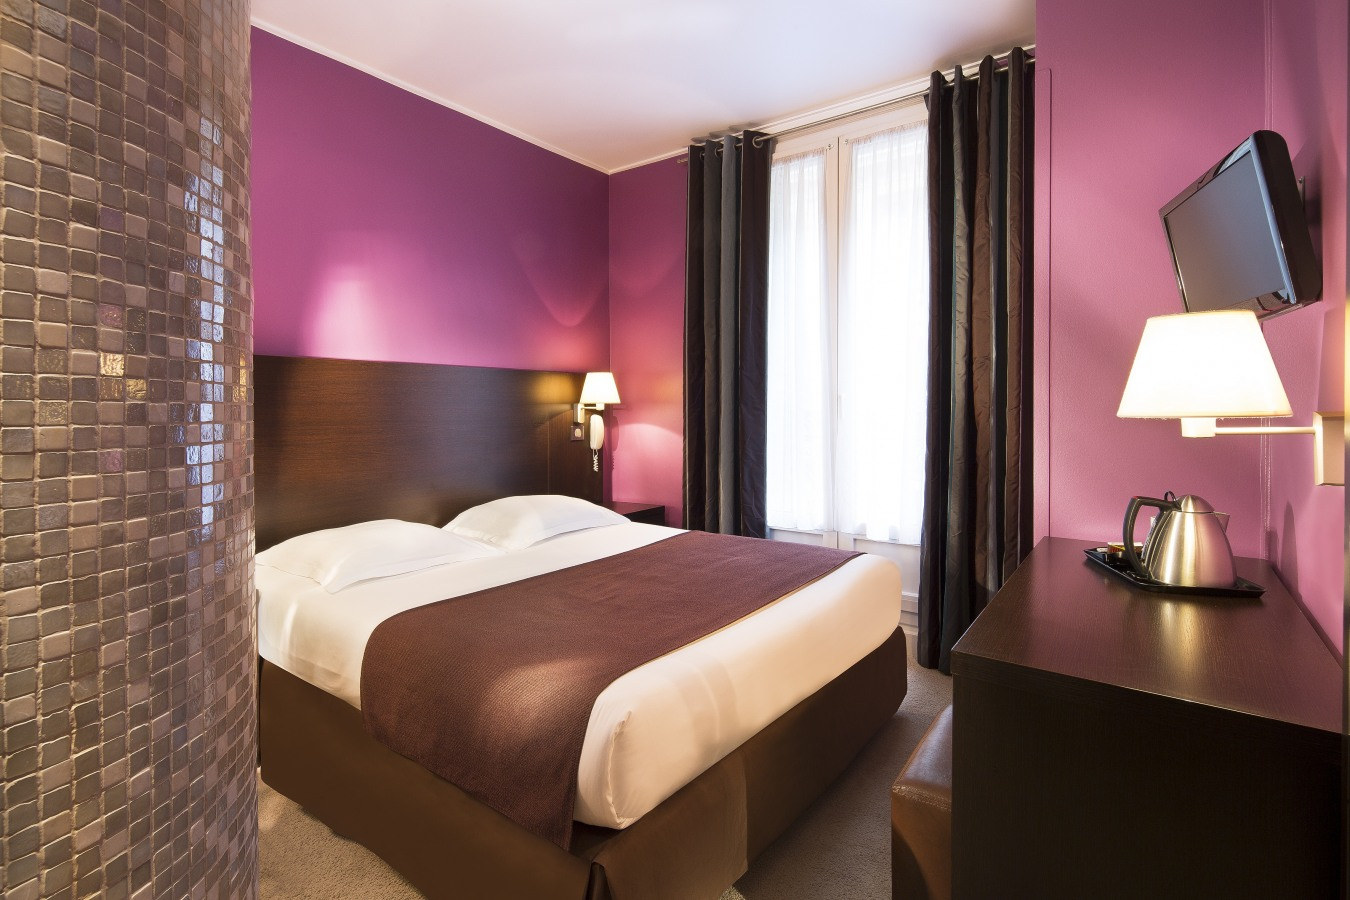 Hotel Sophie Germain - Chambres